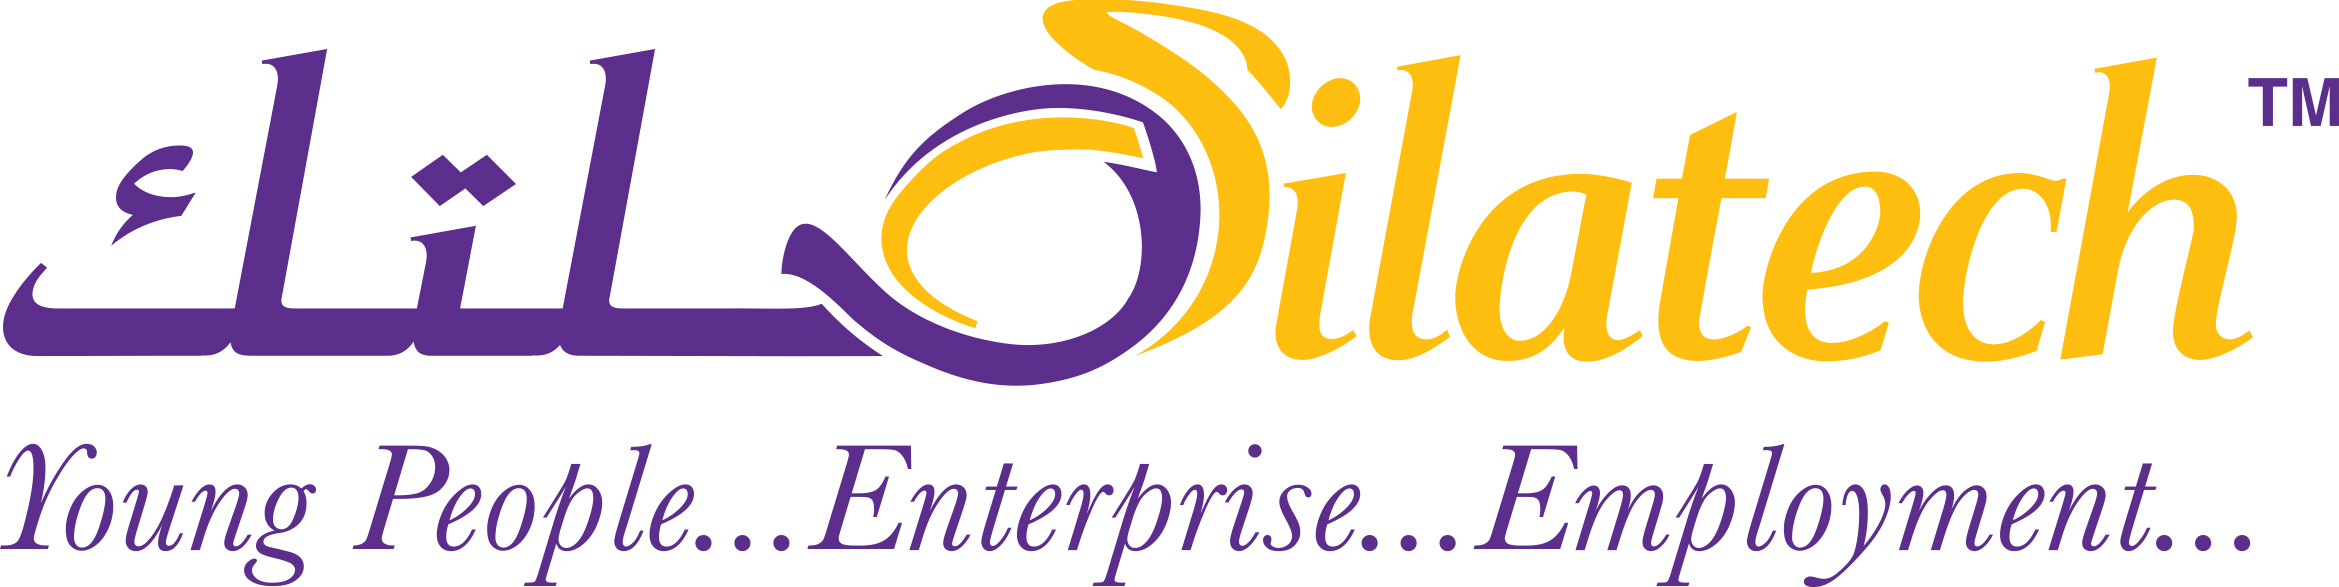 Image result for silatech logo